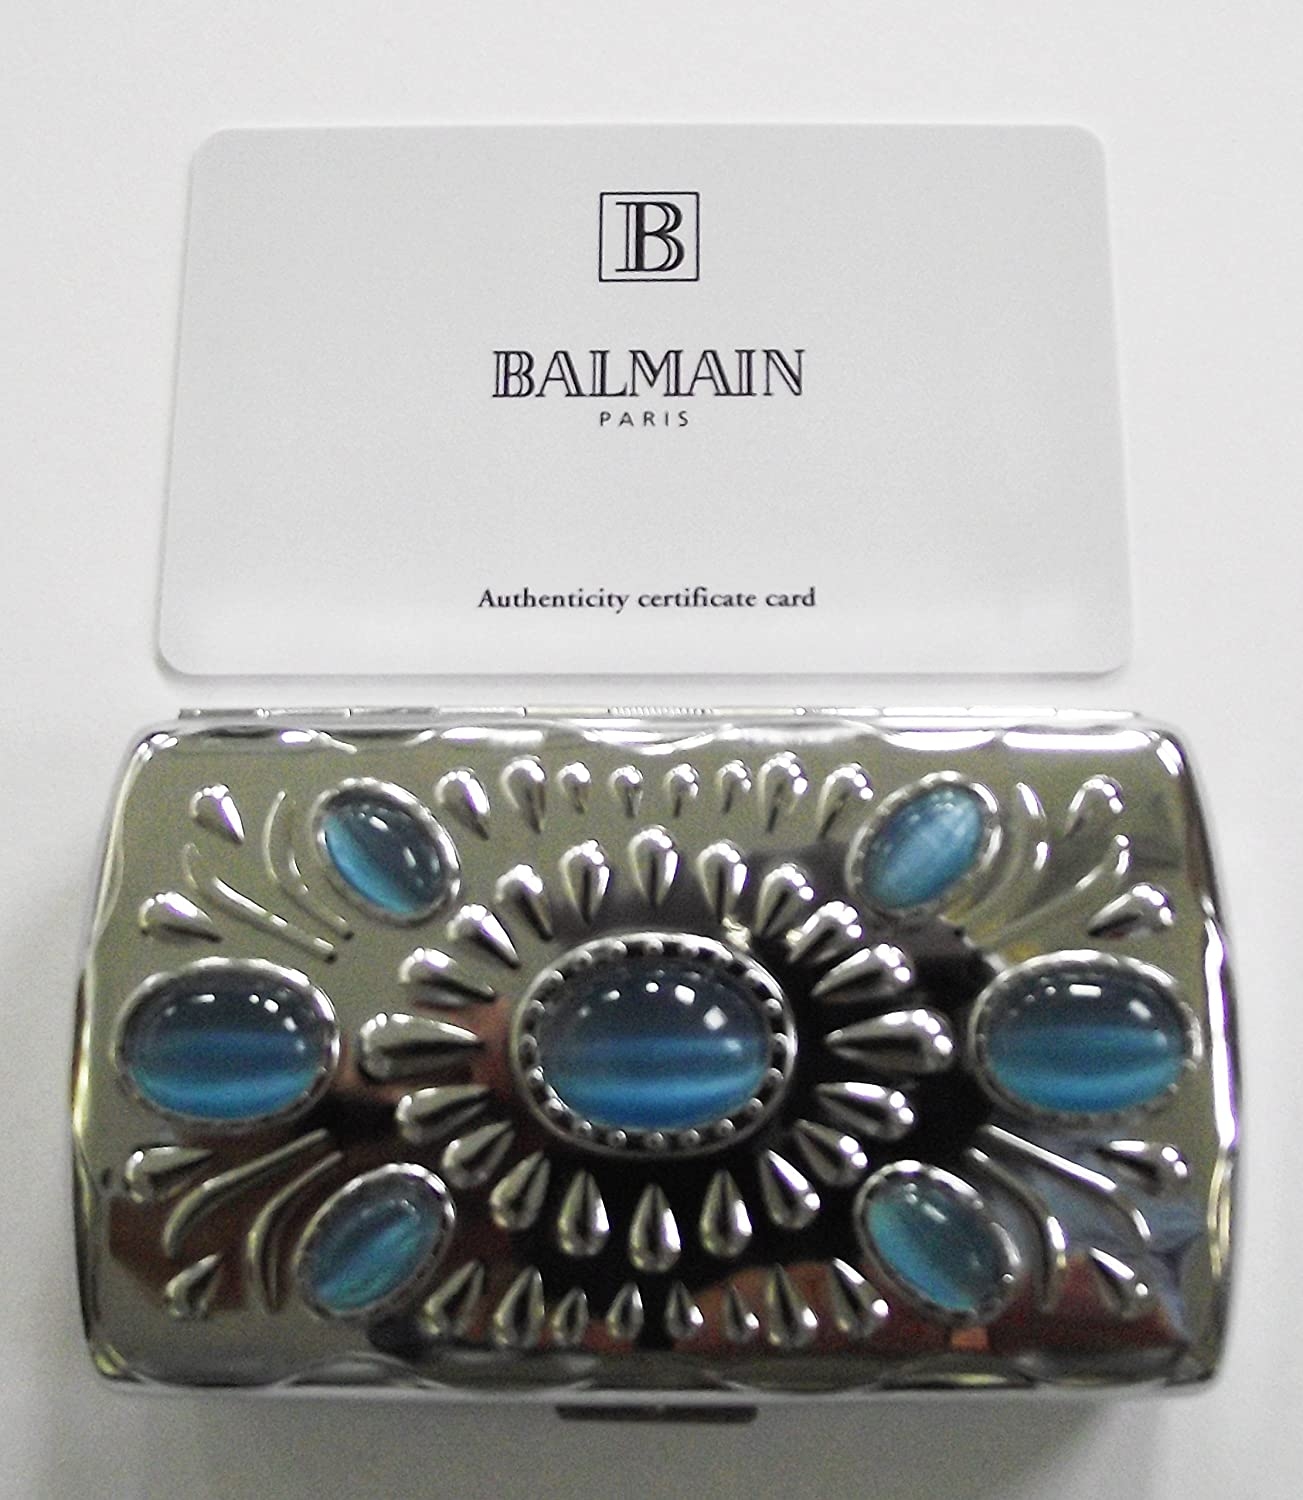 Balmain Paris - Funda para Cigarrillos, Color Plateado: Amazon.es: Equipaje